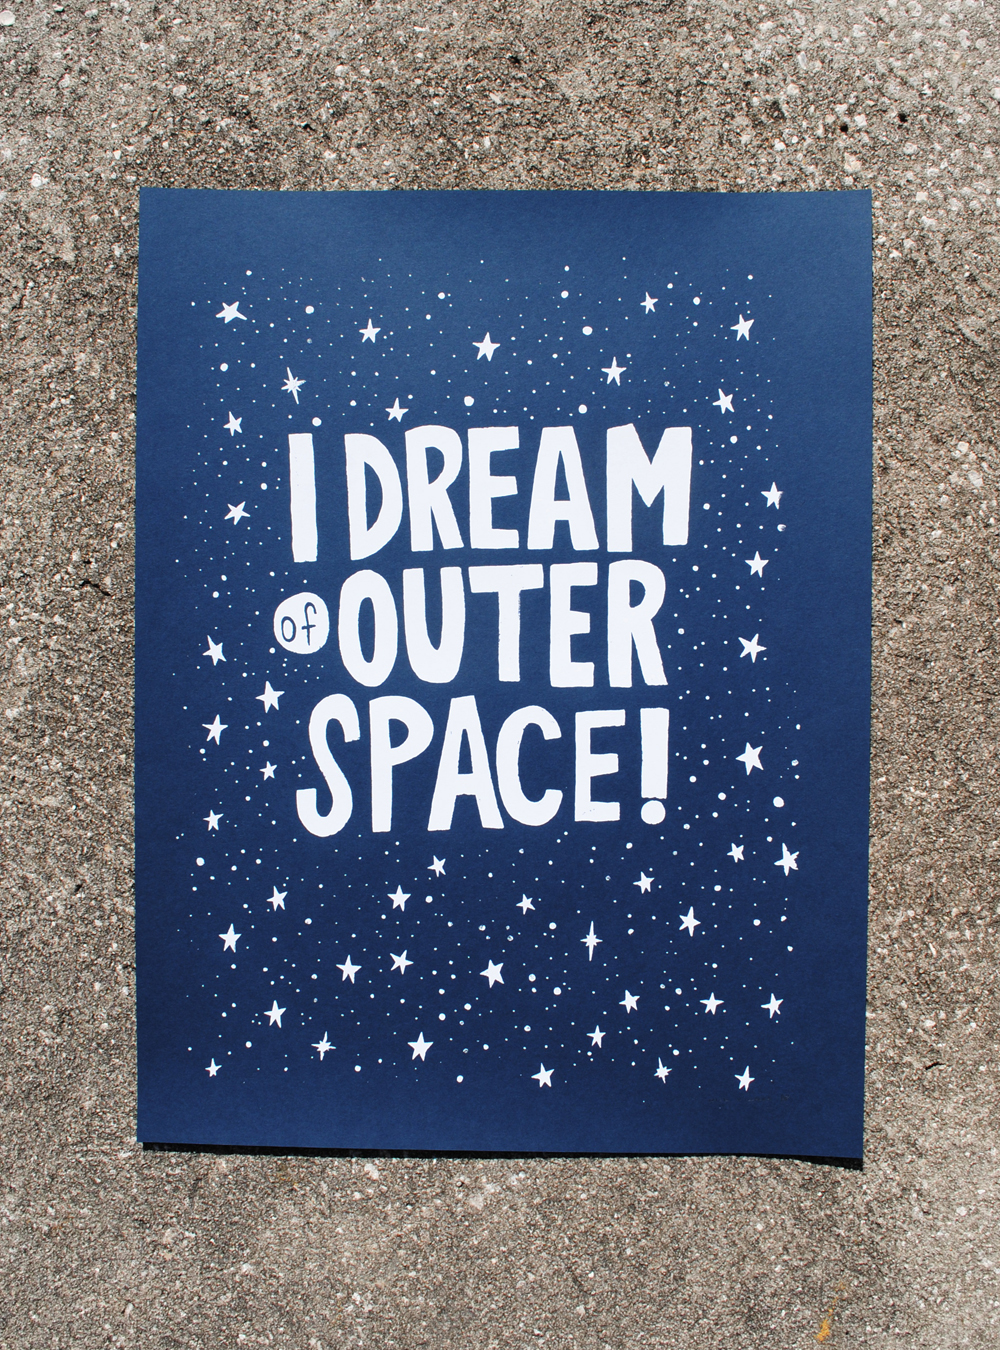 I Dream of Outer Space (part deux)